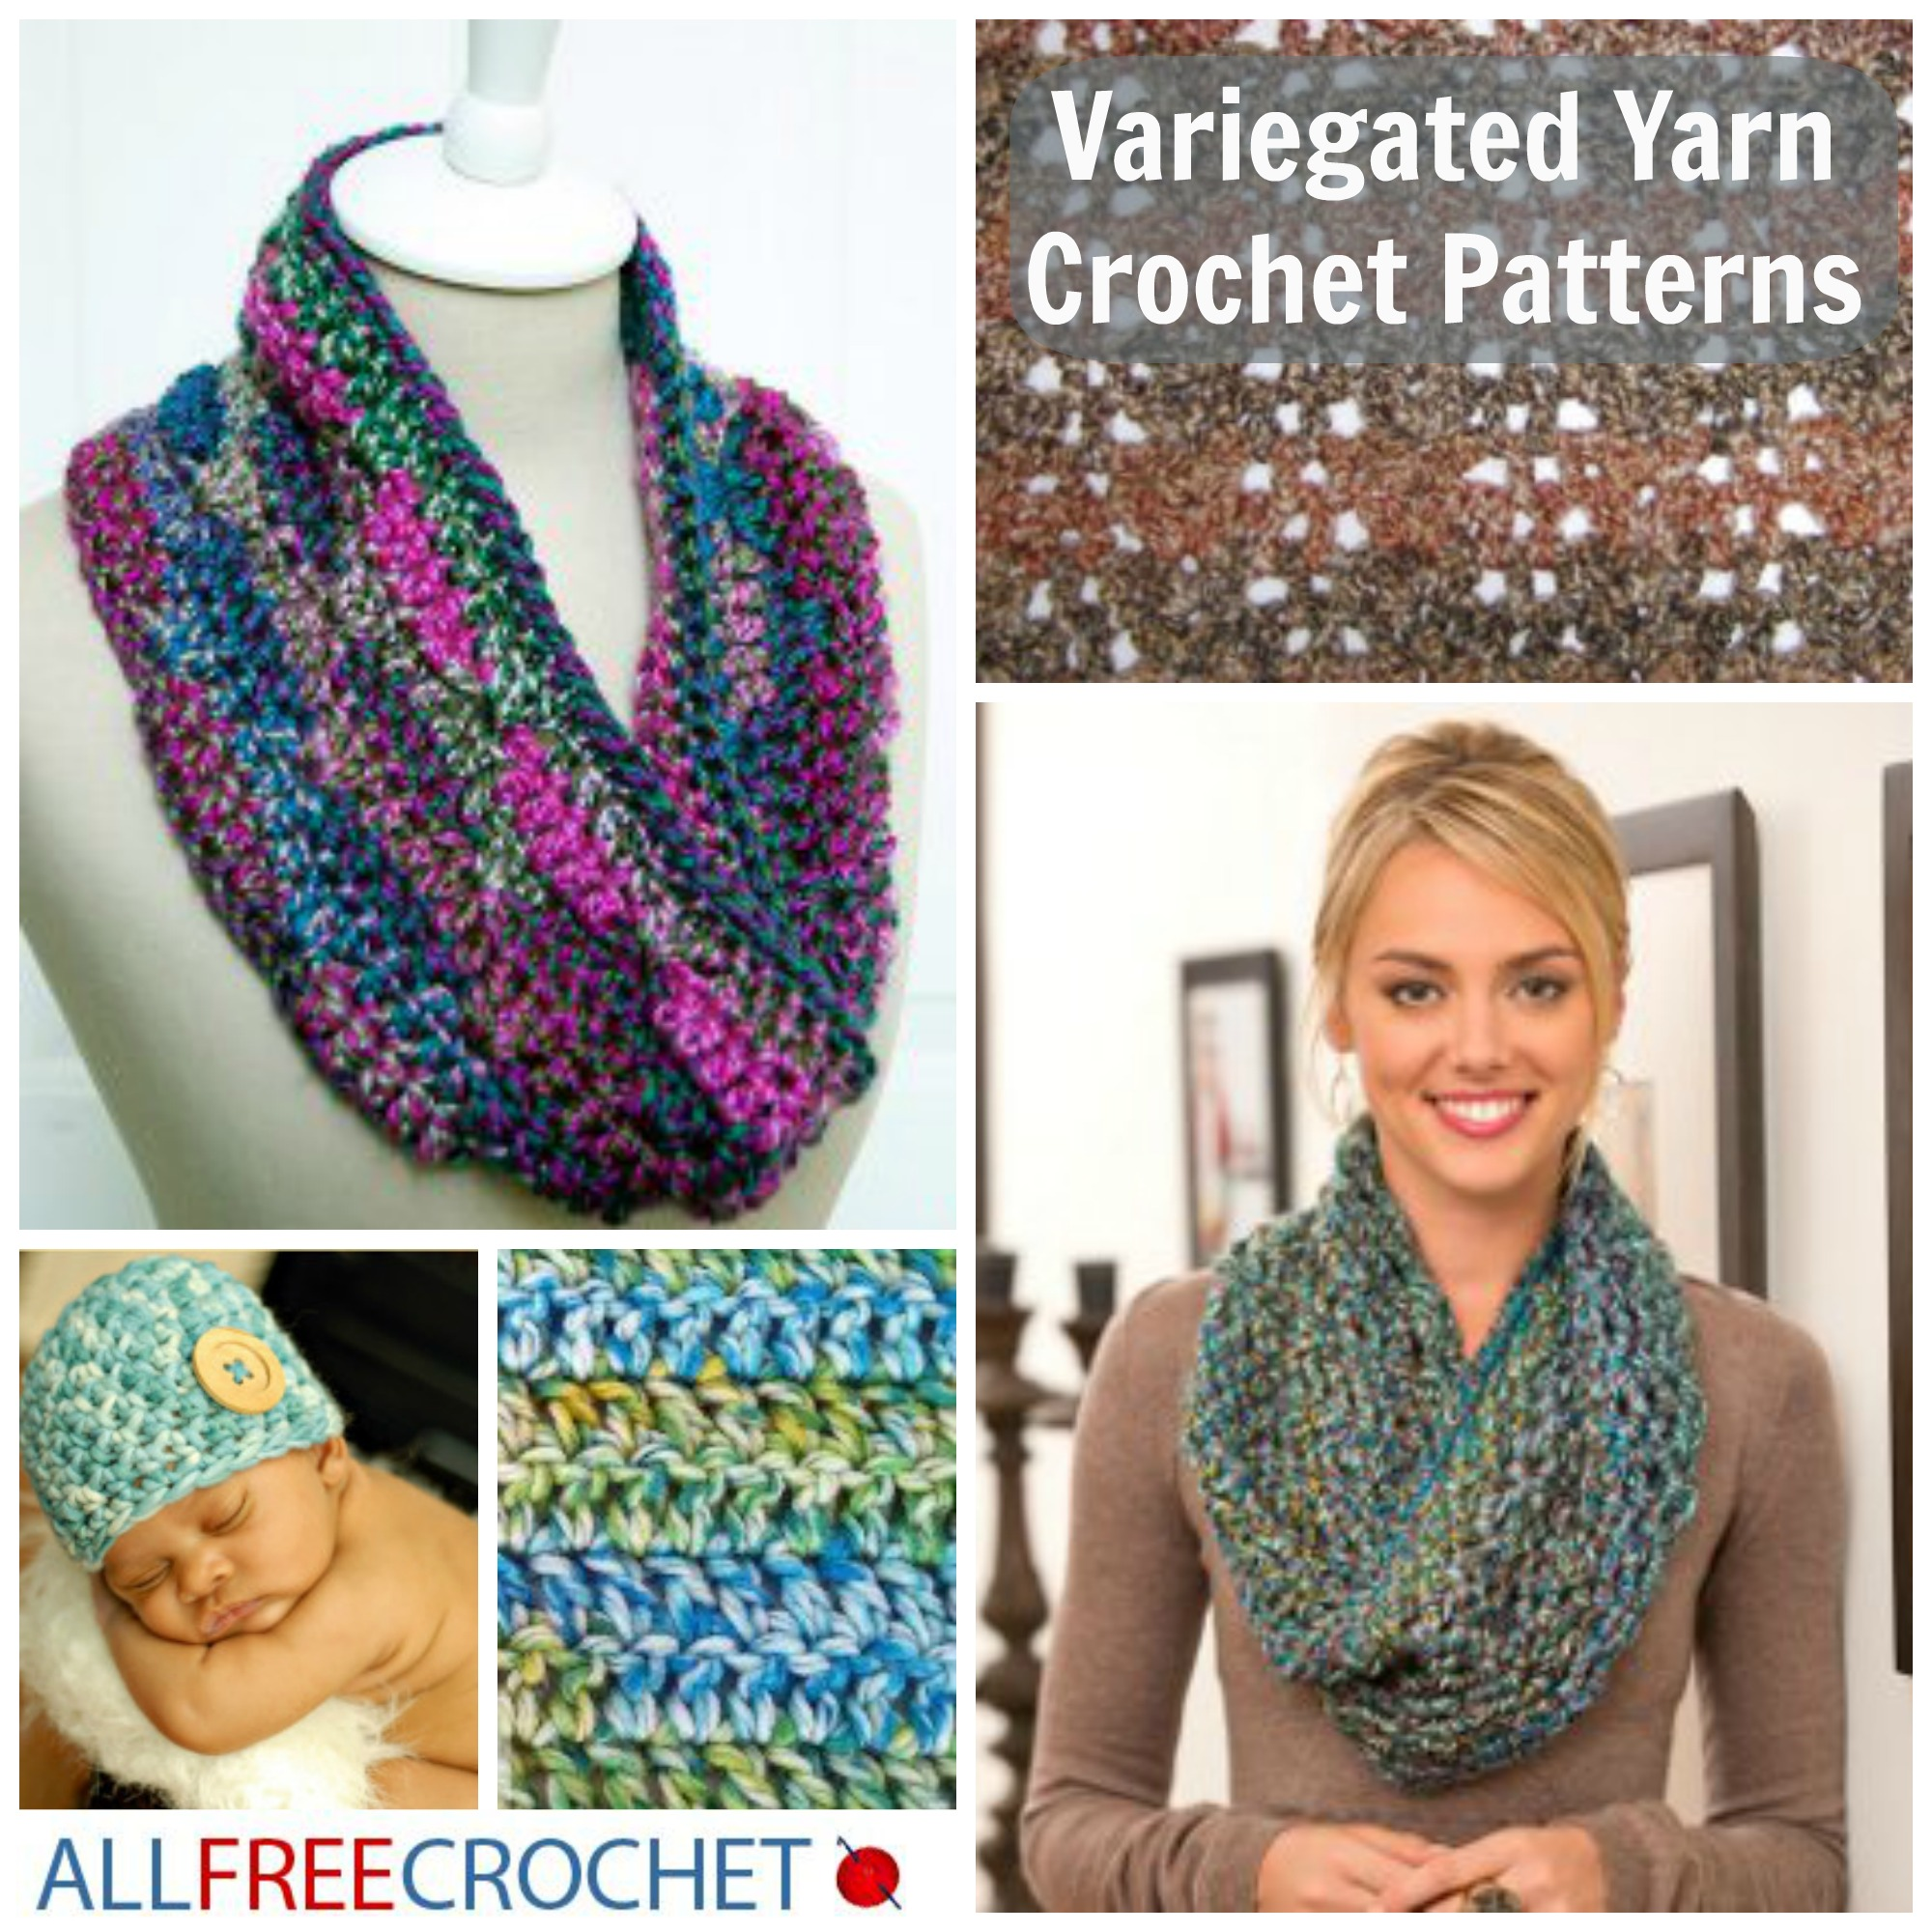 Crochet Patterns Multicolor Yarn : No-Effort Colorful Crochet: Variegated Yarn Patterns ...